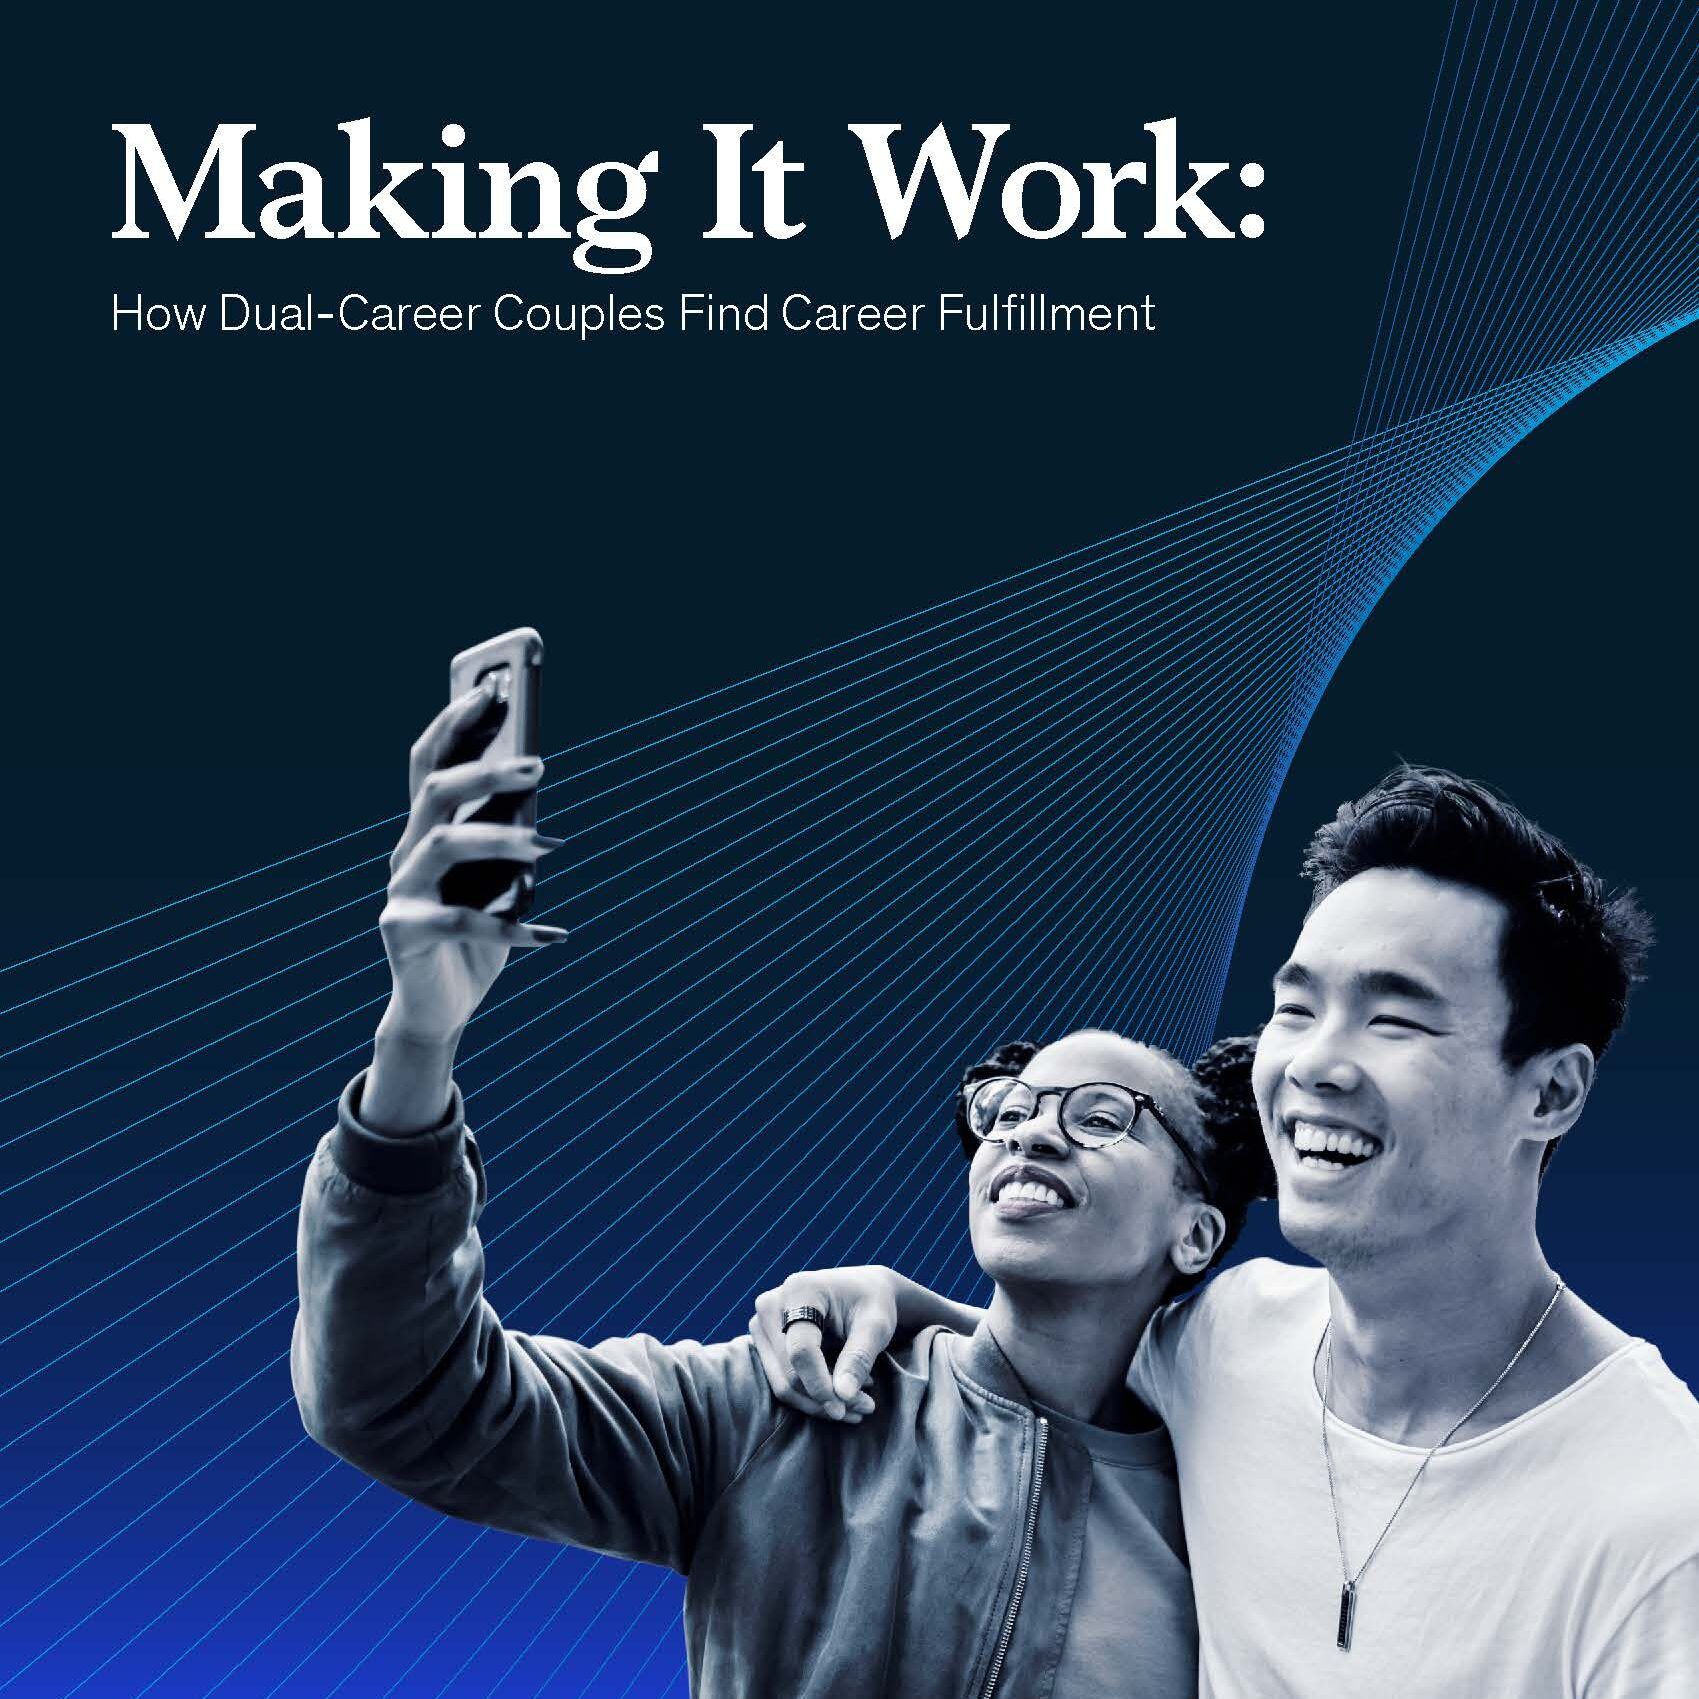 Making It Work How Dual-Career Couples Find Career Fulfillment